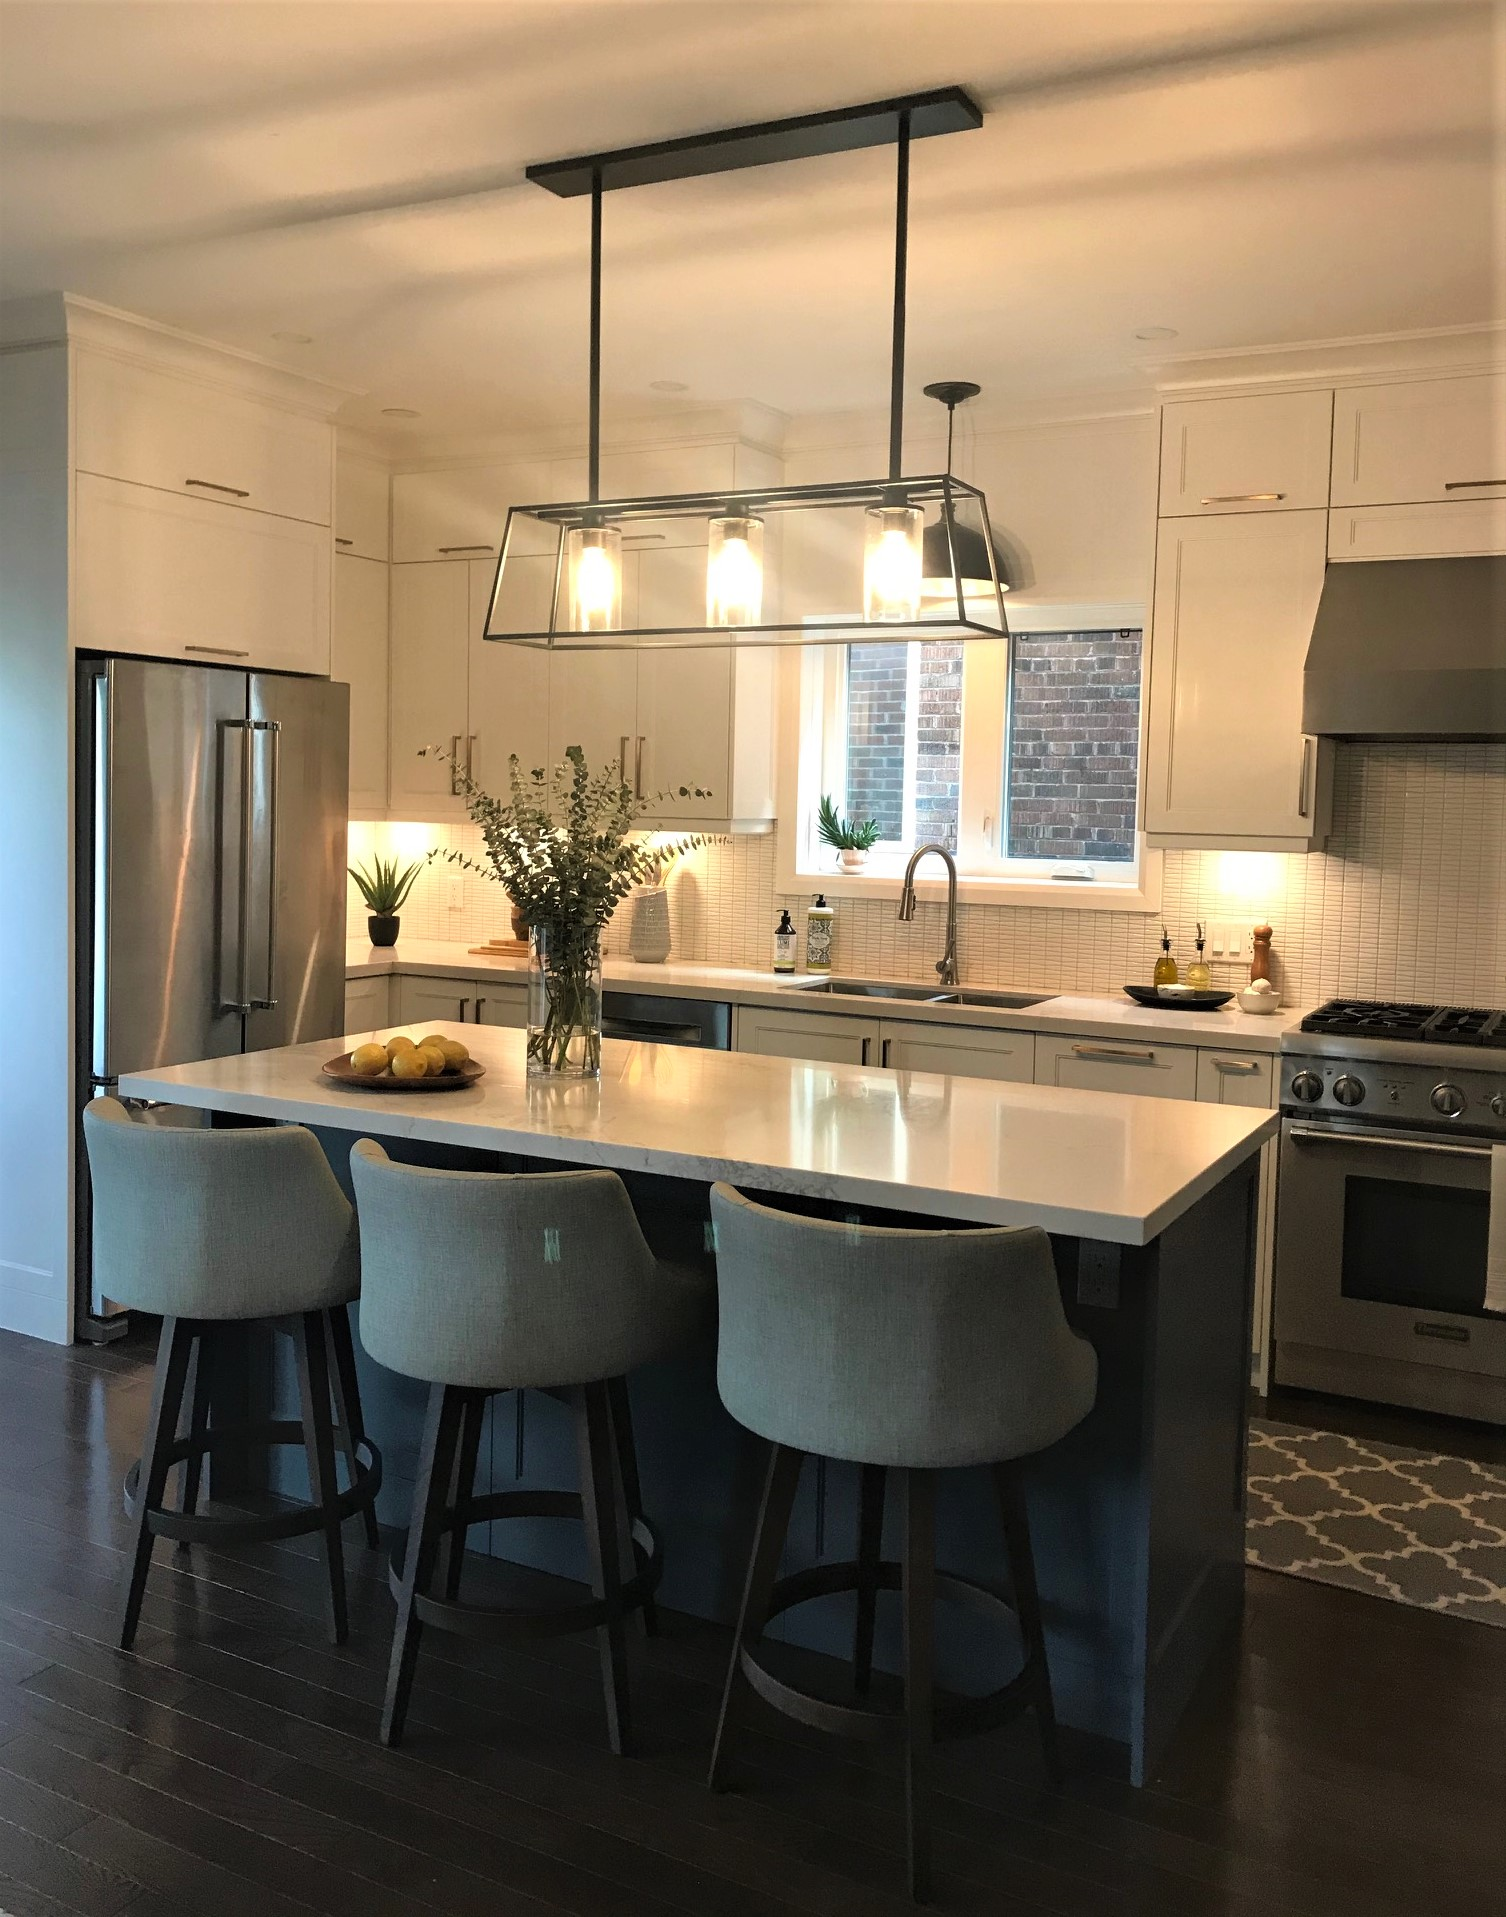 Home Front Redesigns Kennedy Avenue Project Kitchen Photo2